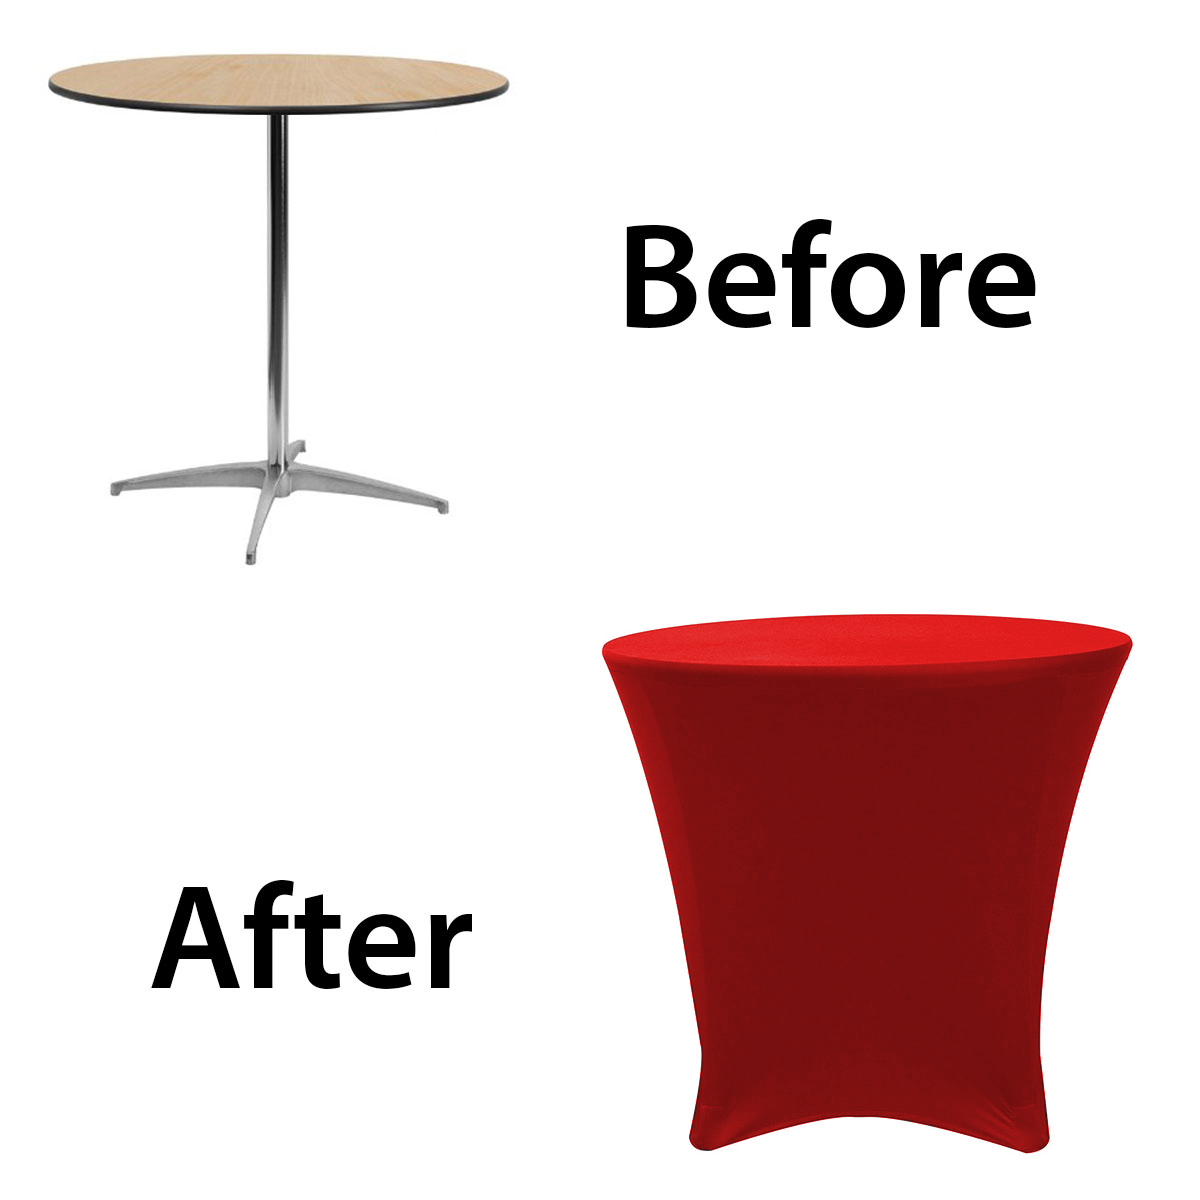 30-30-inch-lowboy-cocktail-spandex-table-covers-red-before-after.jpg